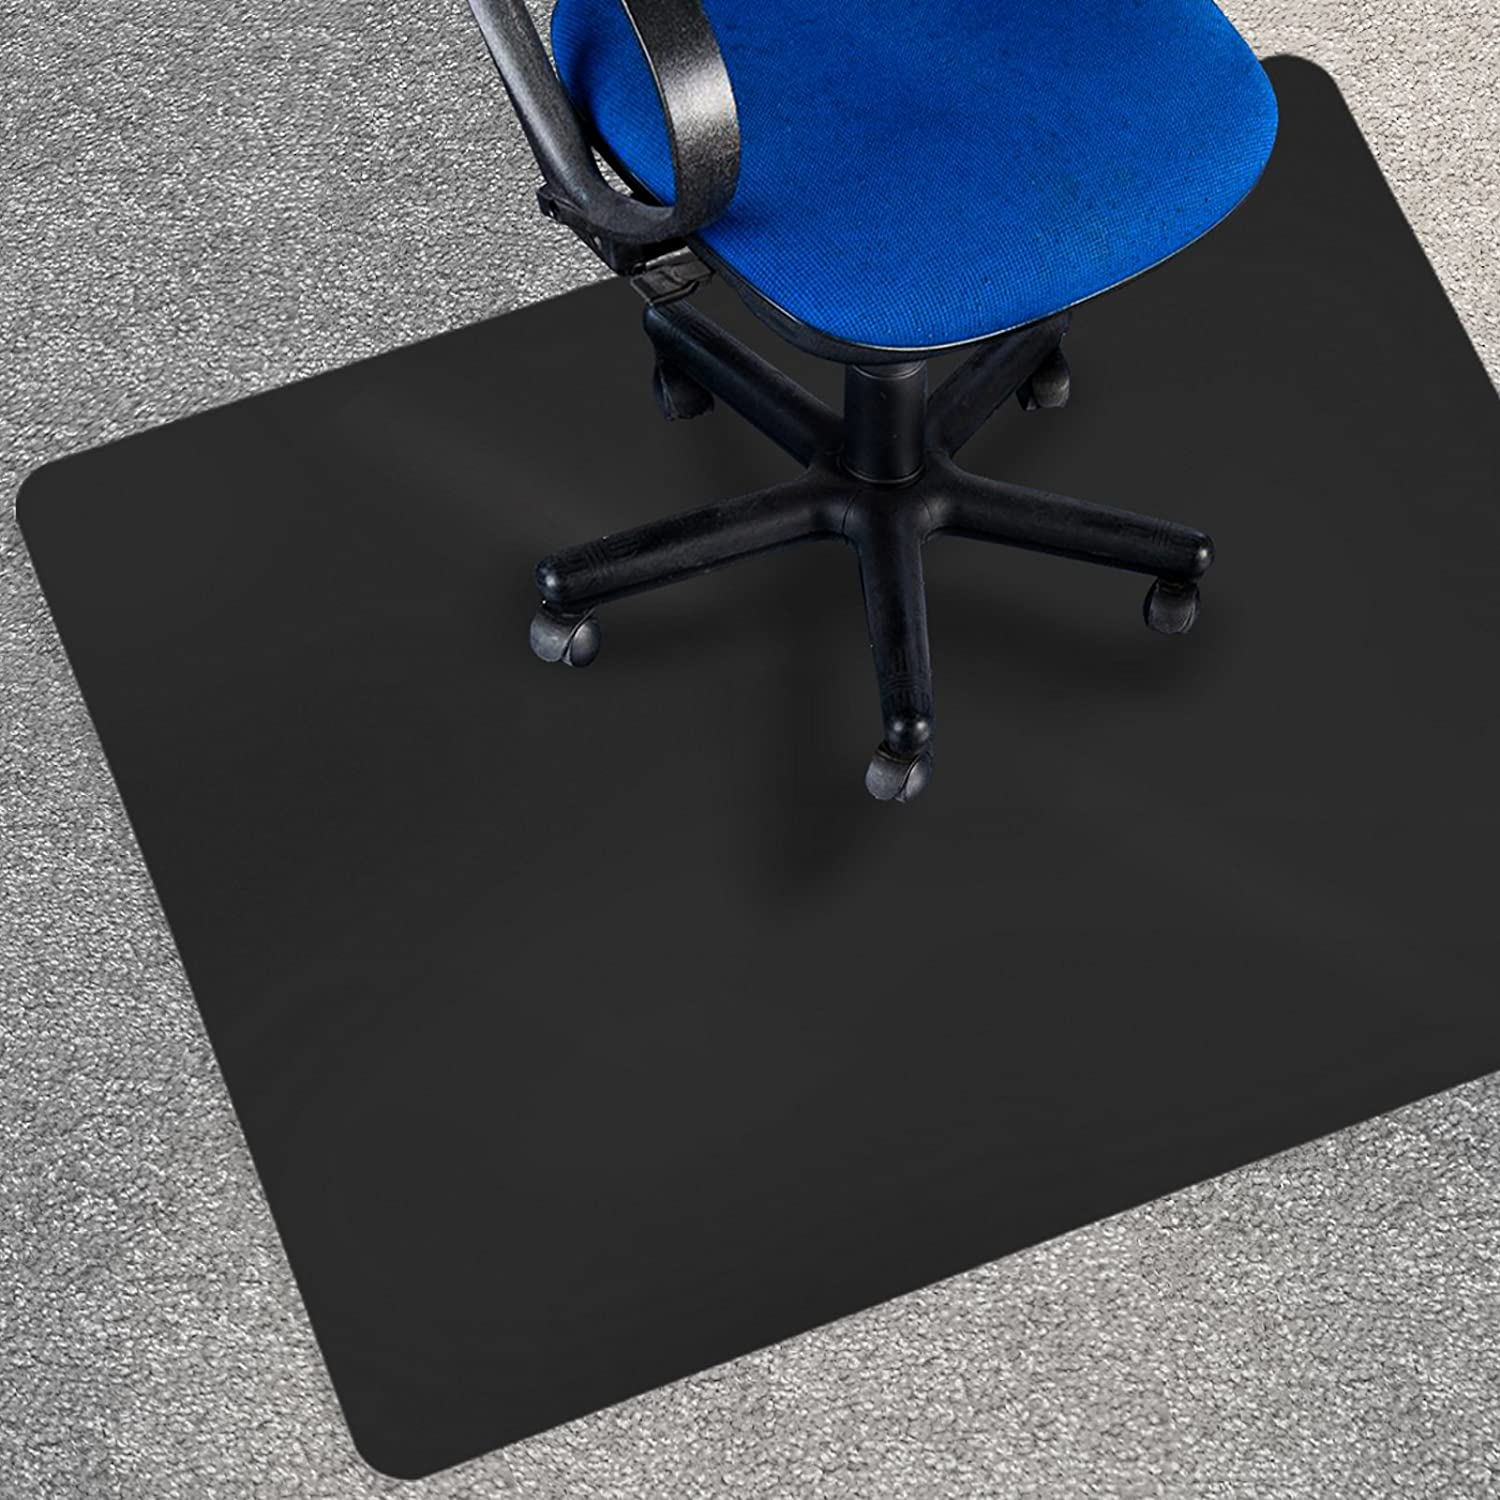 design decoration office wheels computer protector plastic chair mats desk protectors image floor of size under for full carpet chairs on